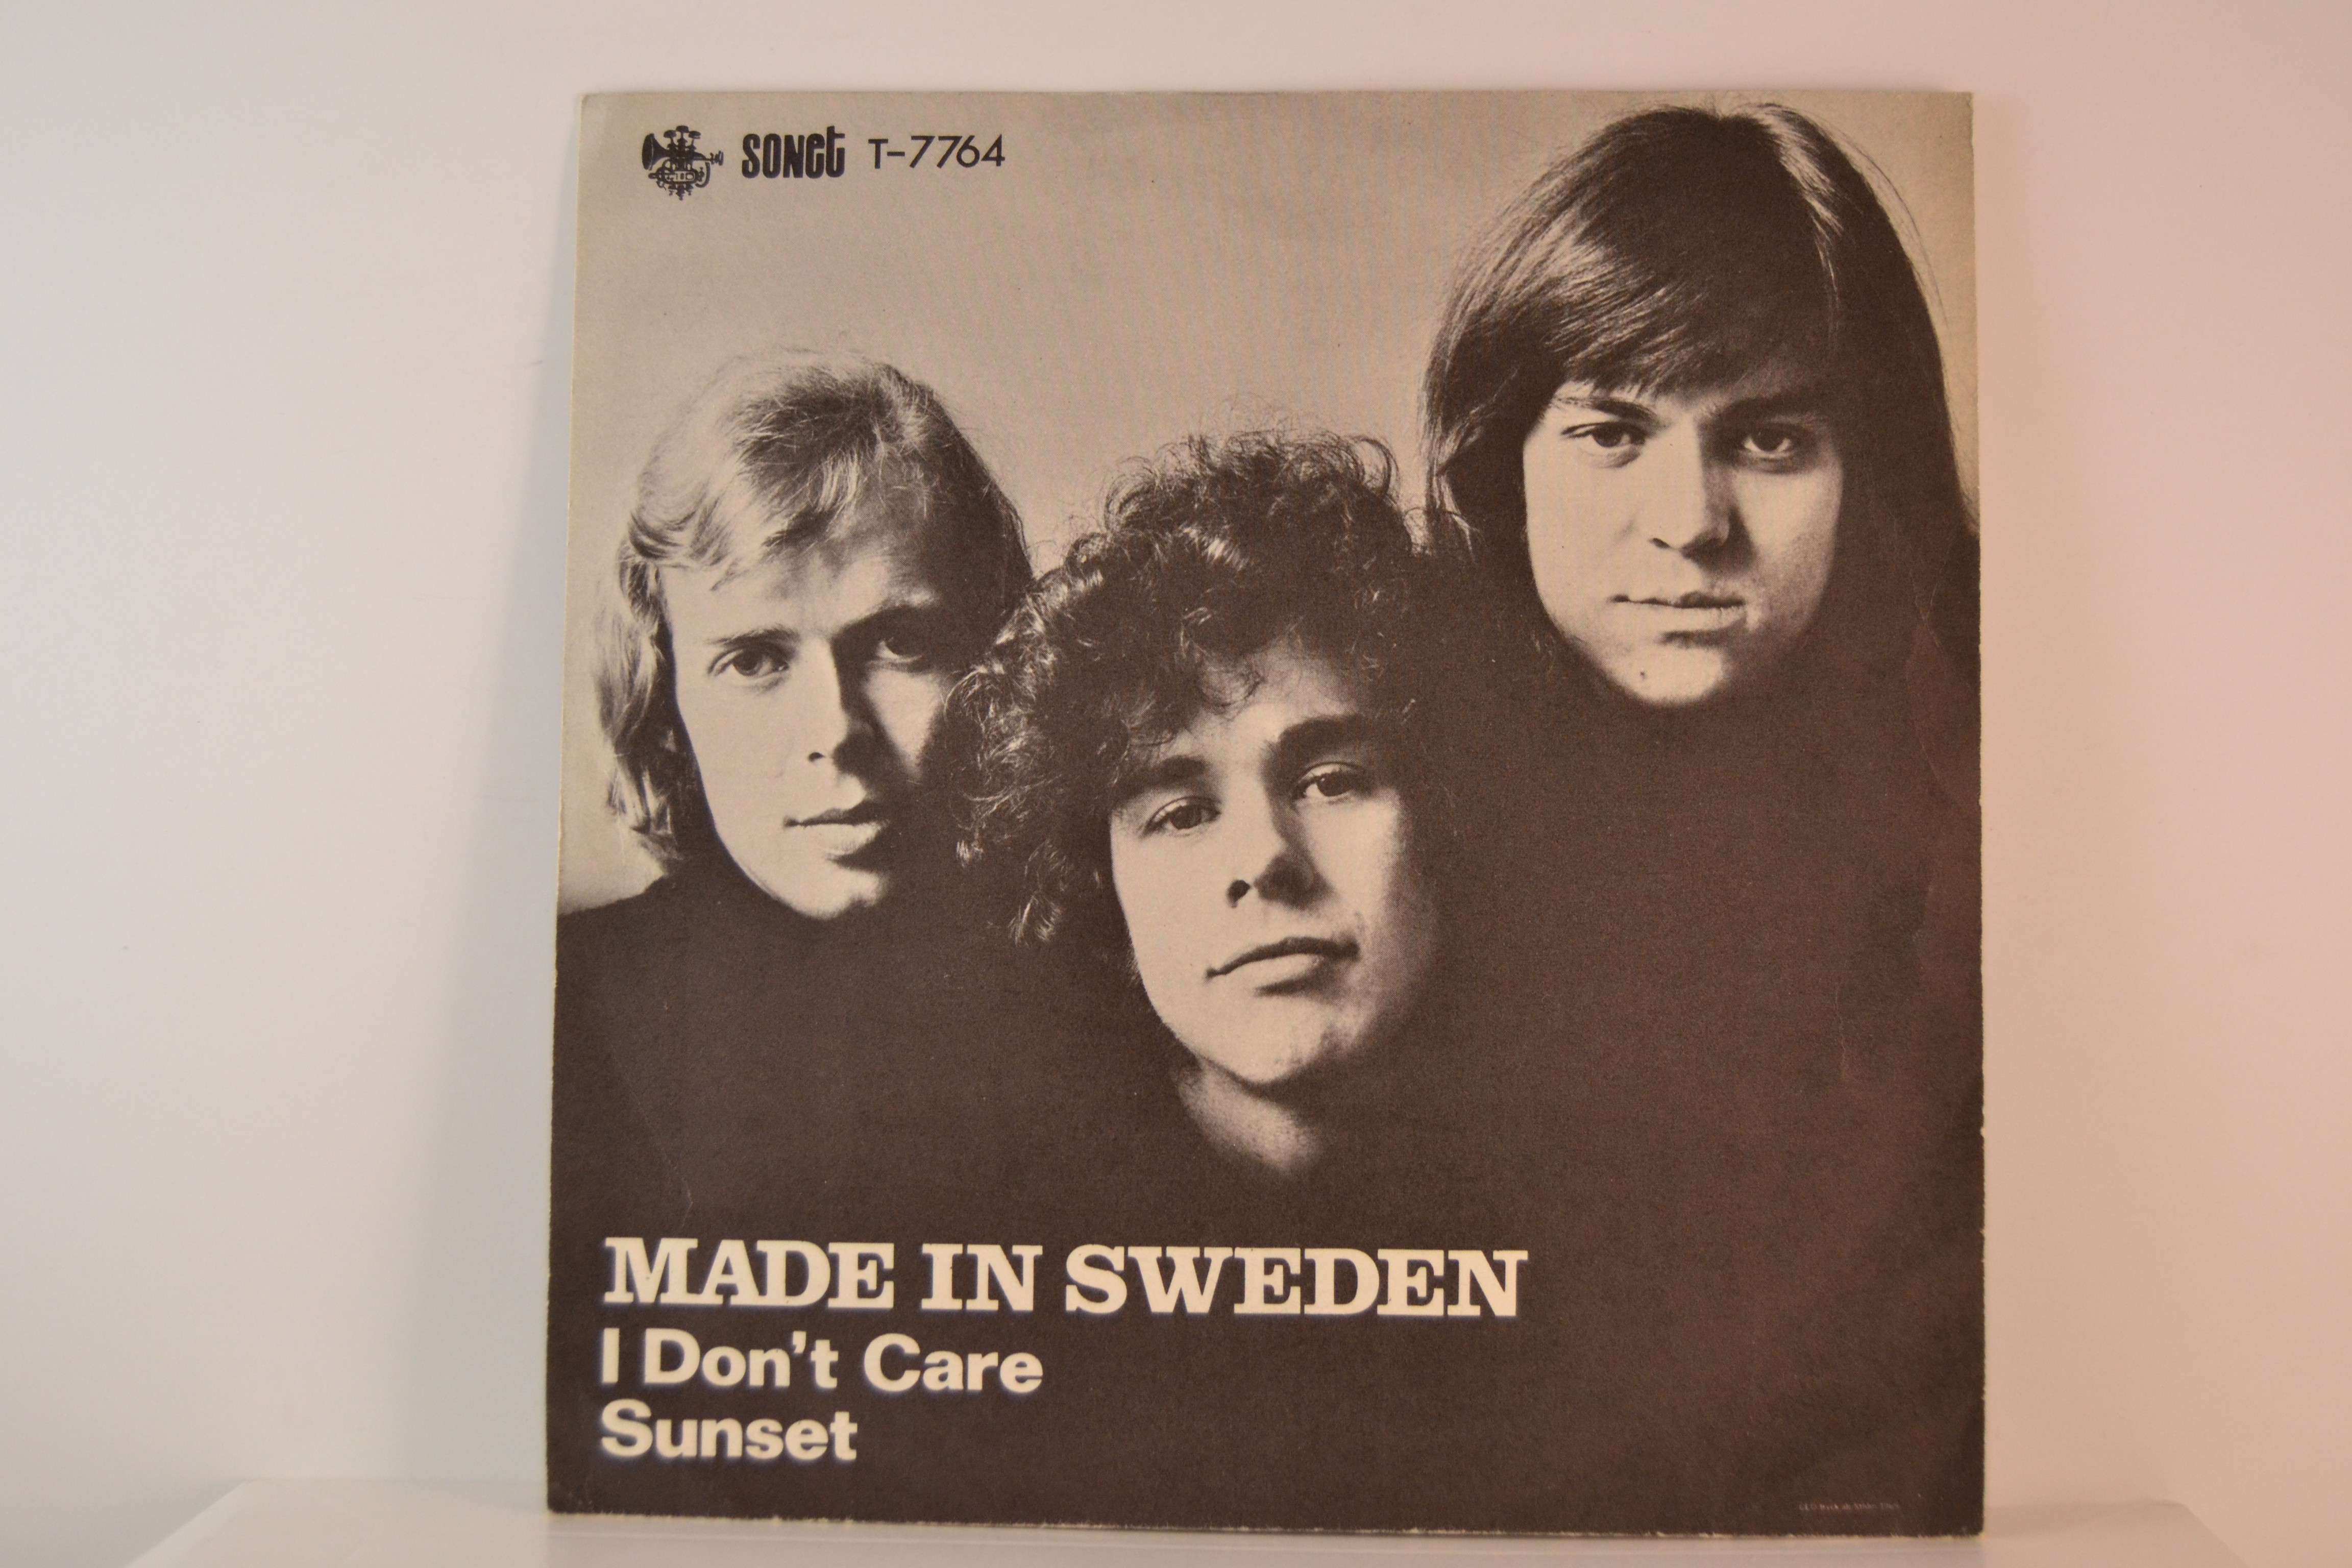 MADE IN SWEDEN : I don't care / Sunset